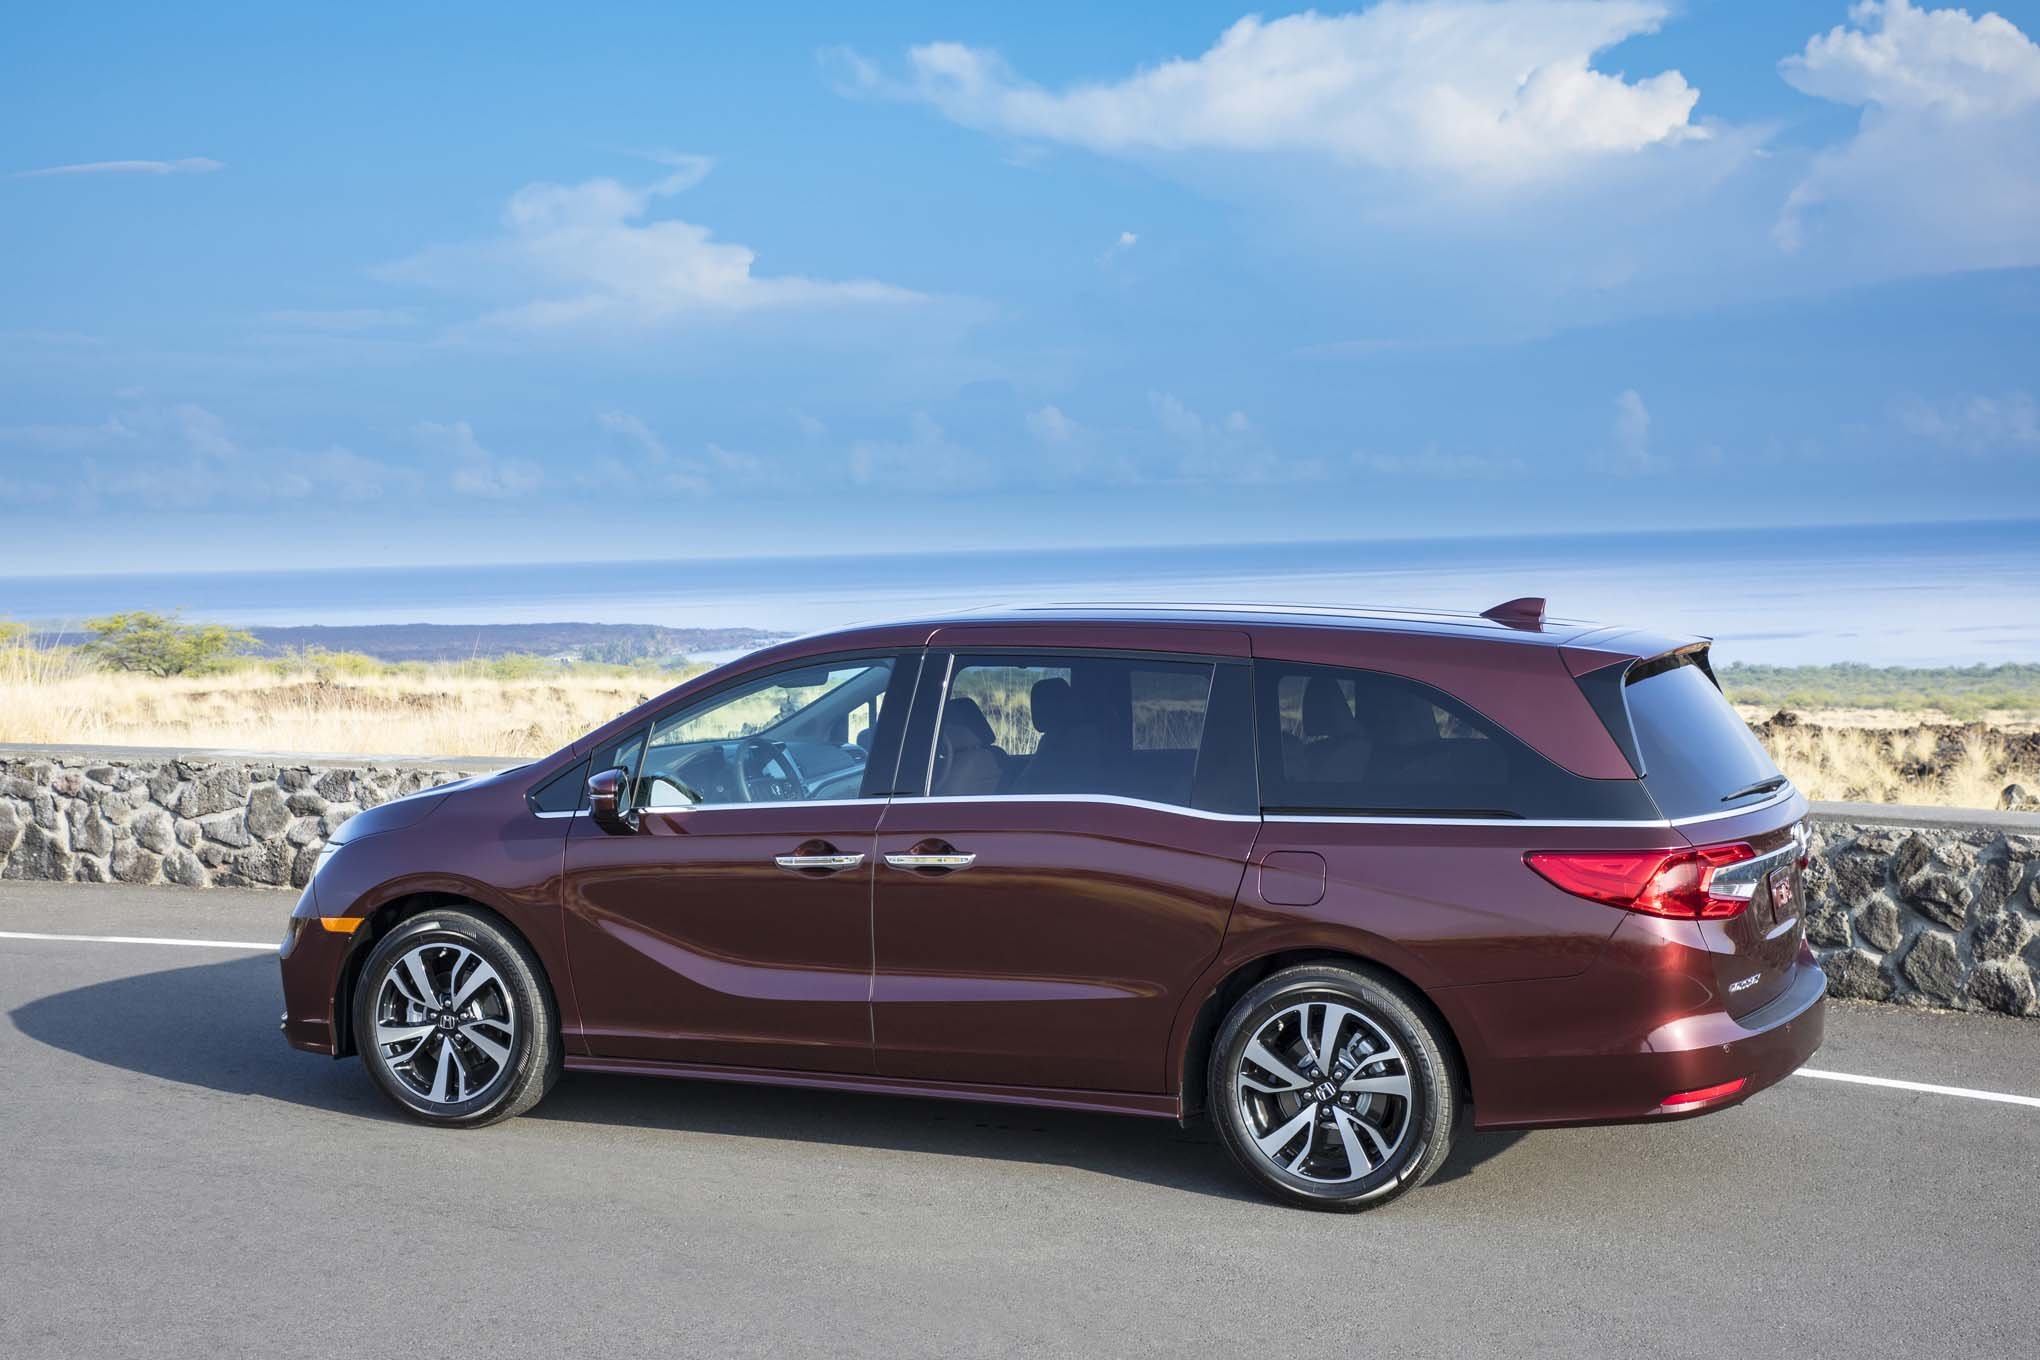 odyssey generation incoming photos new my for price news the from honda priced